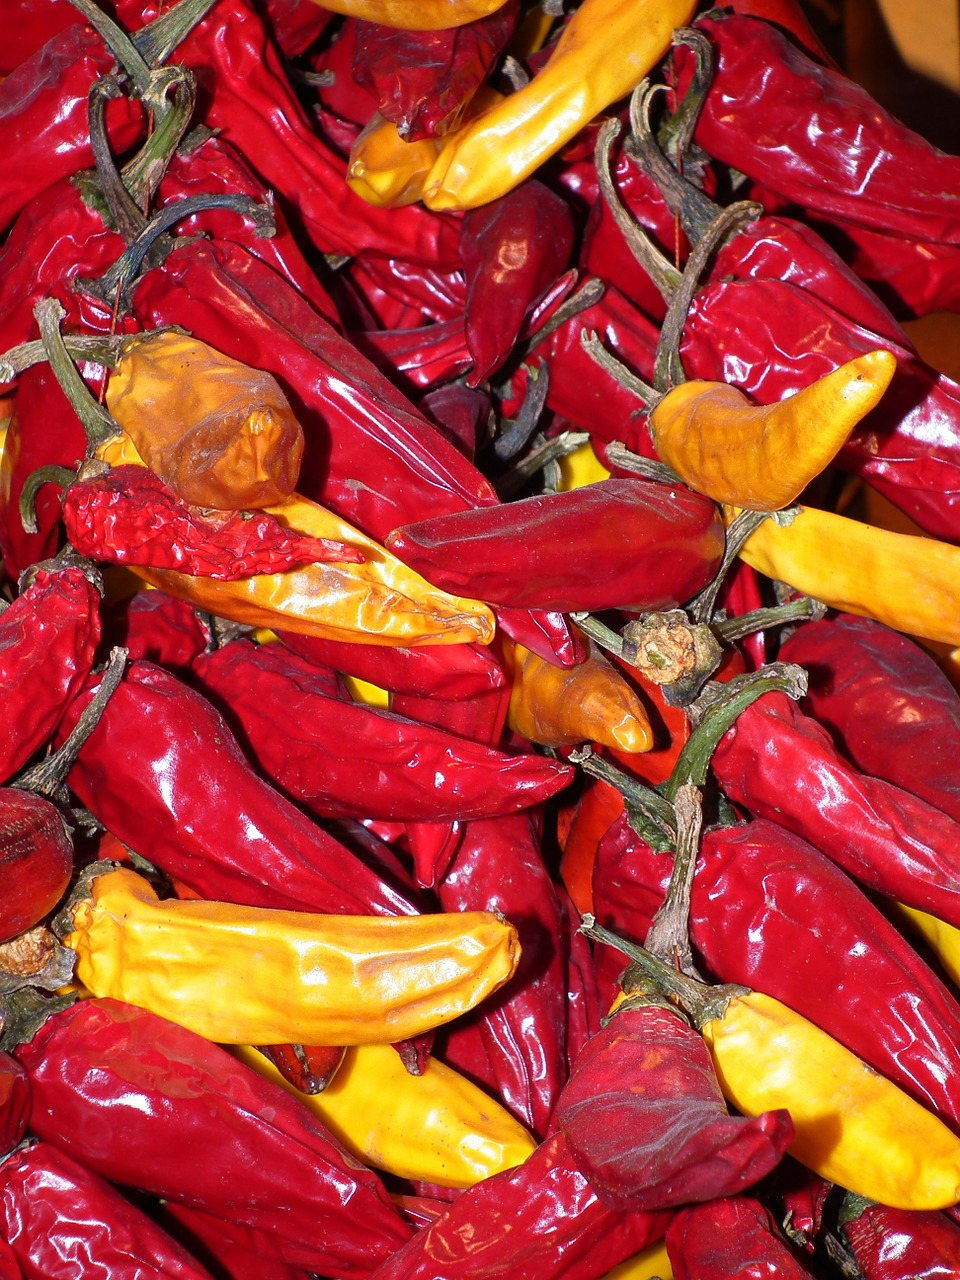 paprika,hungarian paprika,hungary,sharp,fiery,csipoes,csemege,free pictures, free photos, free images, royalty free, free illustrations, public domain